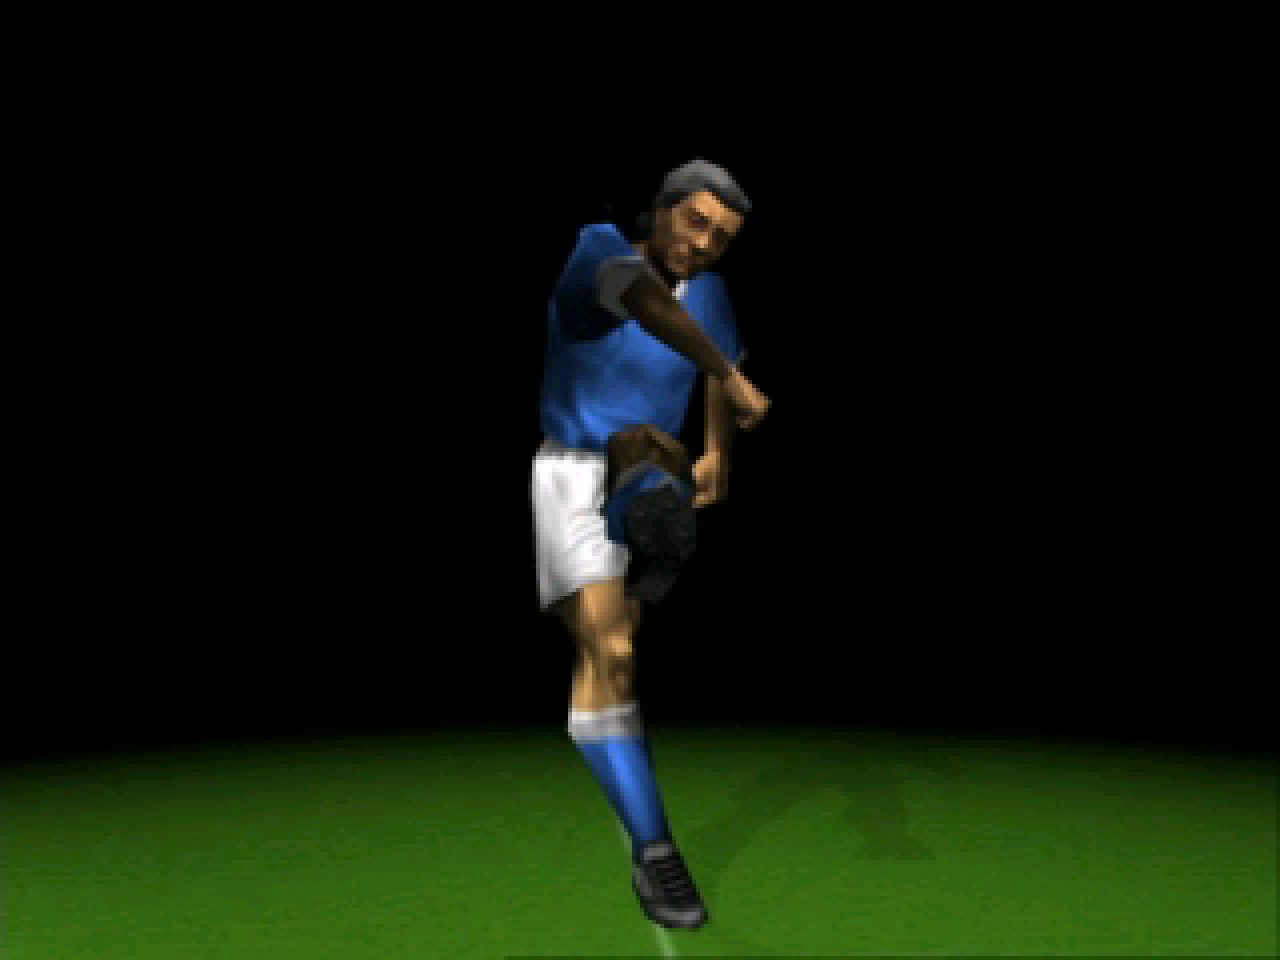 https://s3.eu-west-3.amazonaws.com/games.anthony-dessalles.com/FIFA 99 PS1 2020 - Screenshots/FIFA 99-201123-184631.png